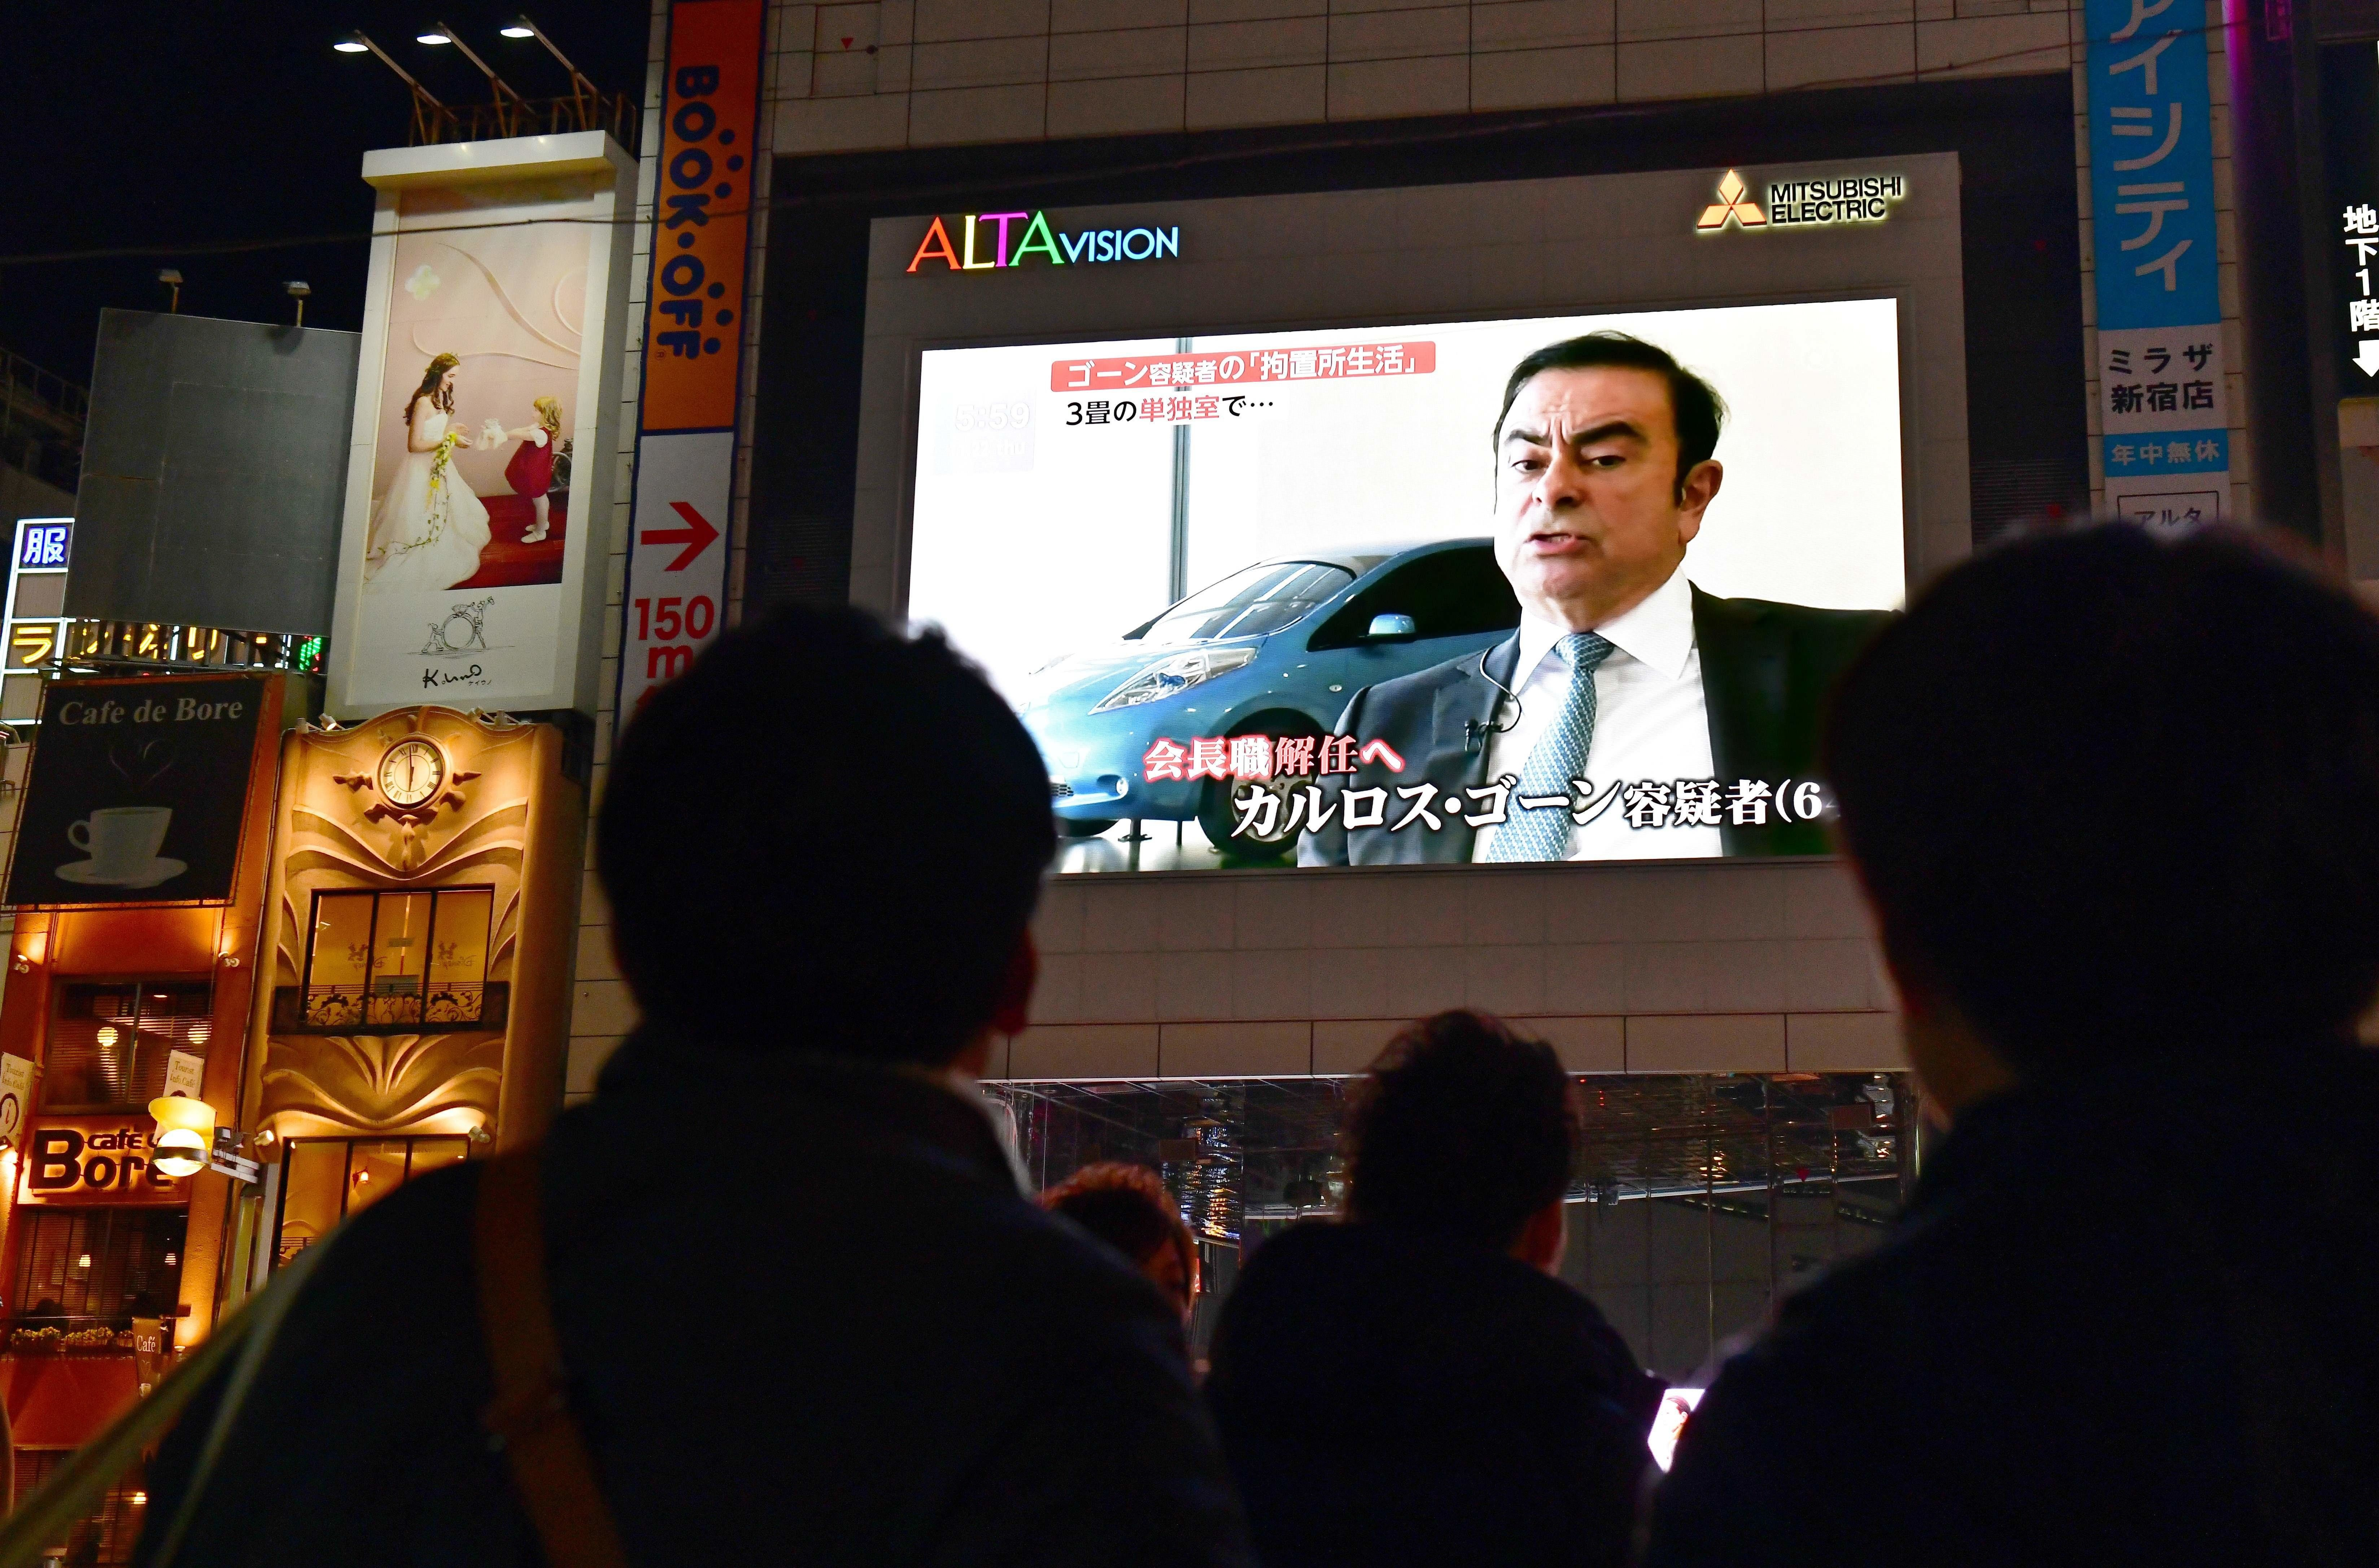 TOPSHOT - Pedestrians look at a screen showing a news programme featuring Nissan chairman Carlos Ghosn in Tokyo on November 22, 2018. - Top executives from crisis-hit Japanese car giant Nissan gathered to sack Carlos Ghosn as chairman on November 22, after his spectacular arrest for financial misconduct stunned the car industry and the business world. (Photo by Kazuhiro NOGI / AFP)        (Photo credit should read KAZUHIRO NOGI/AFP/Getty Images)